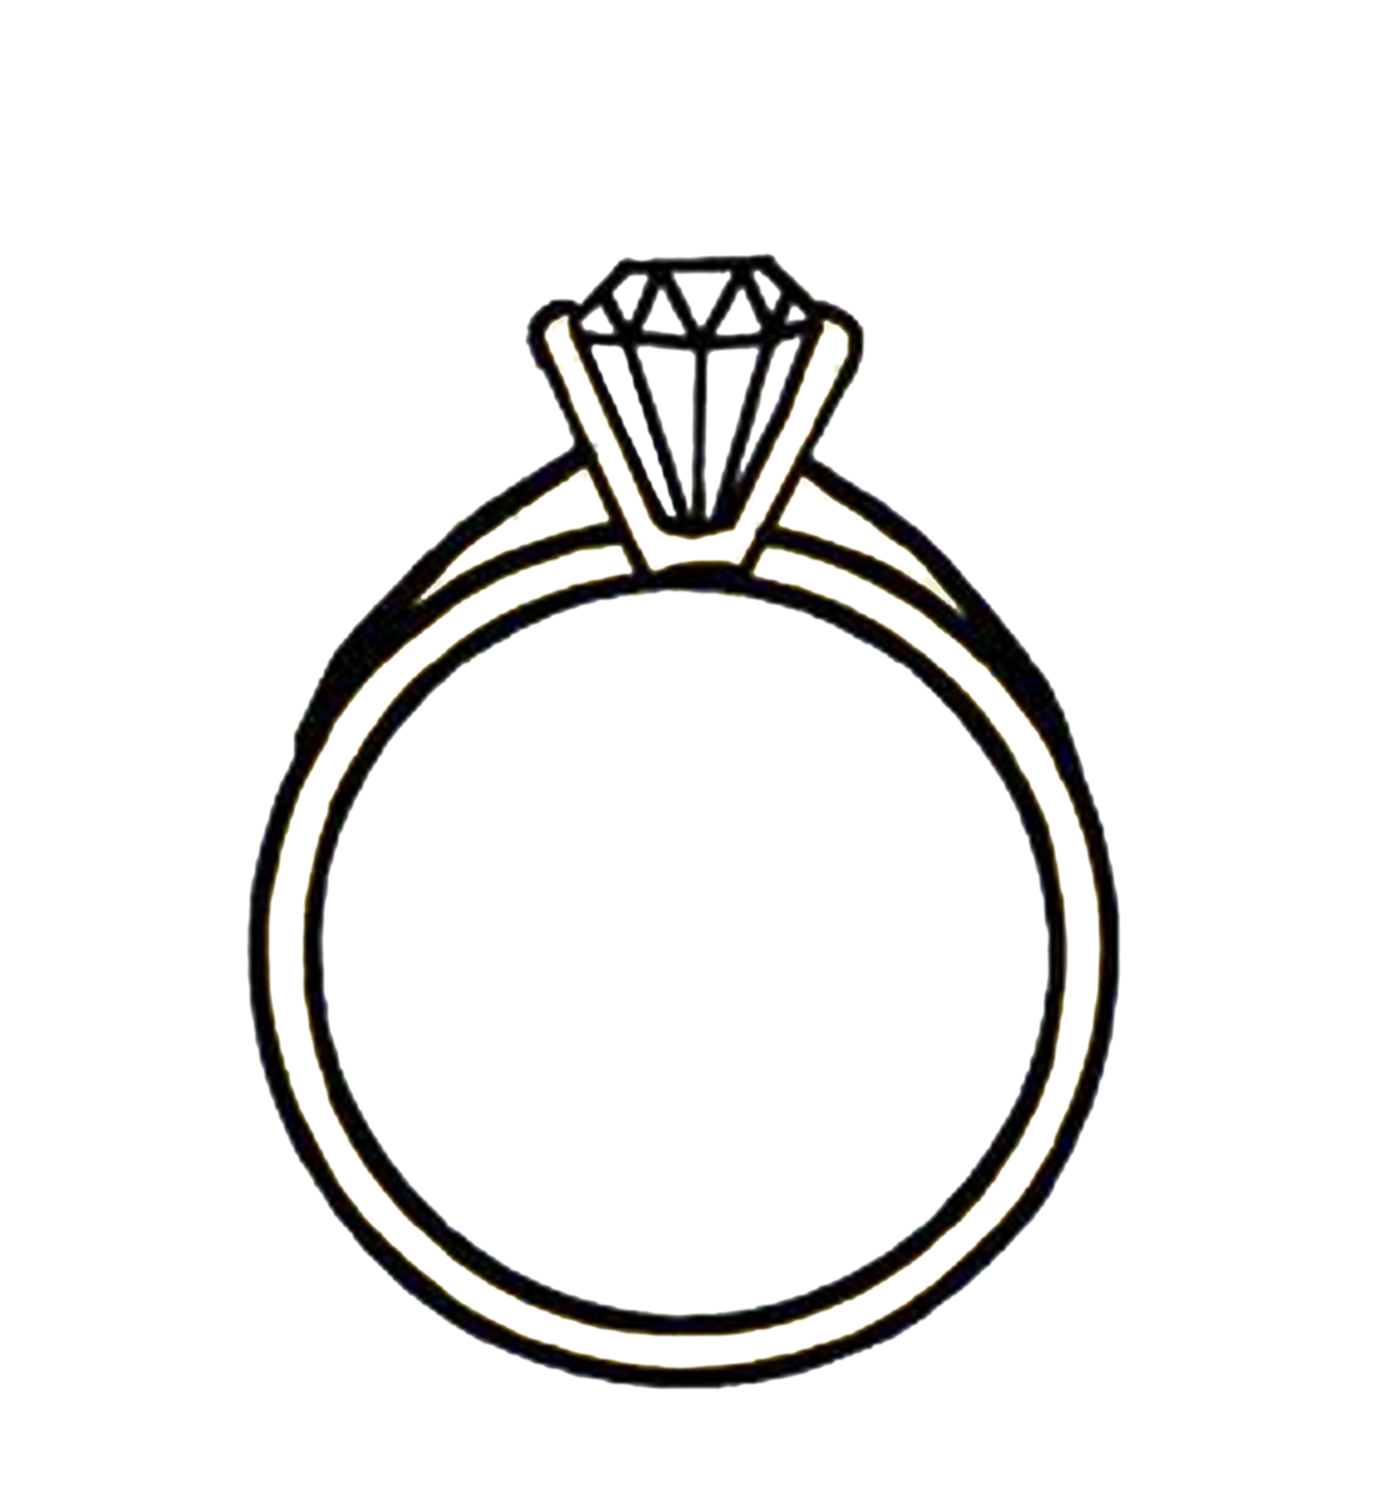 Wedding Ring Clipart.Best Wedding Ring Clipart 16474 Clipartion Com